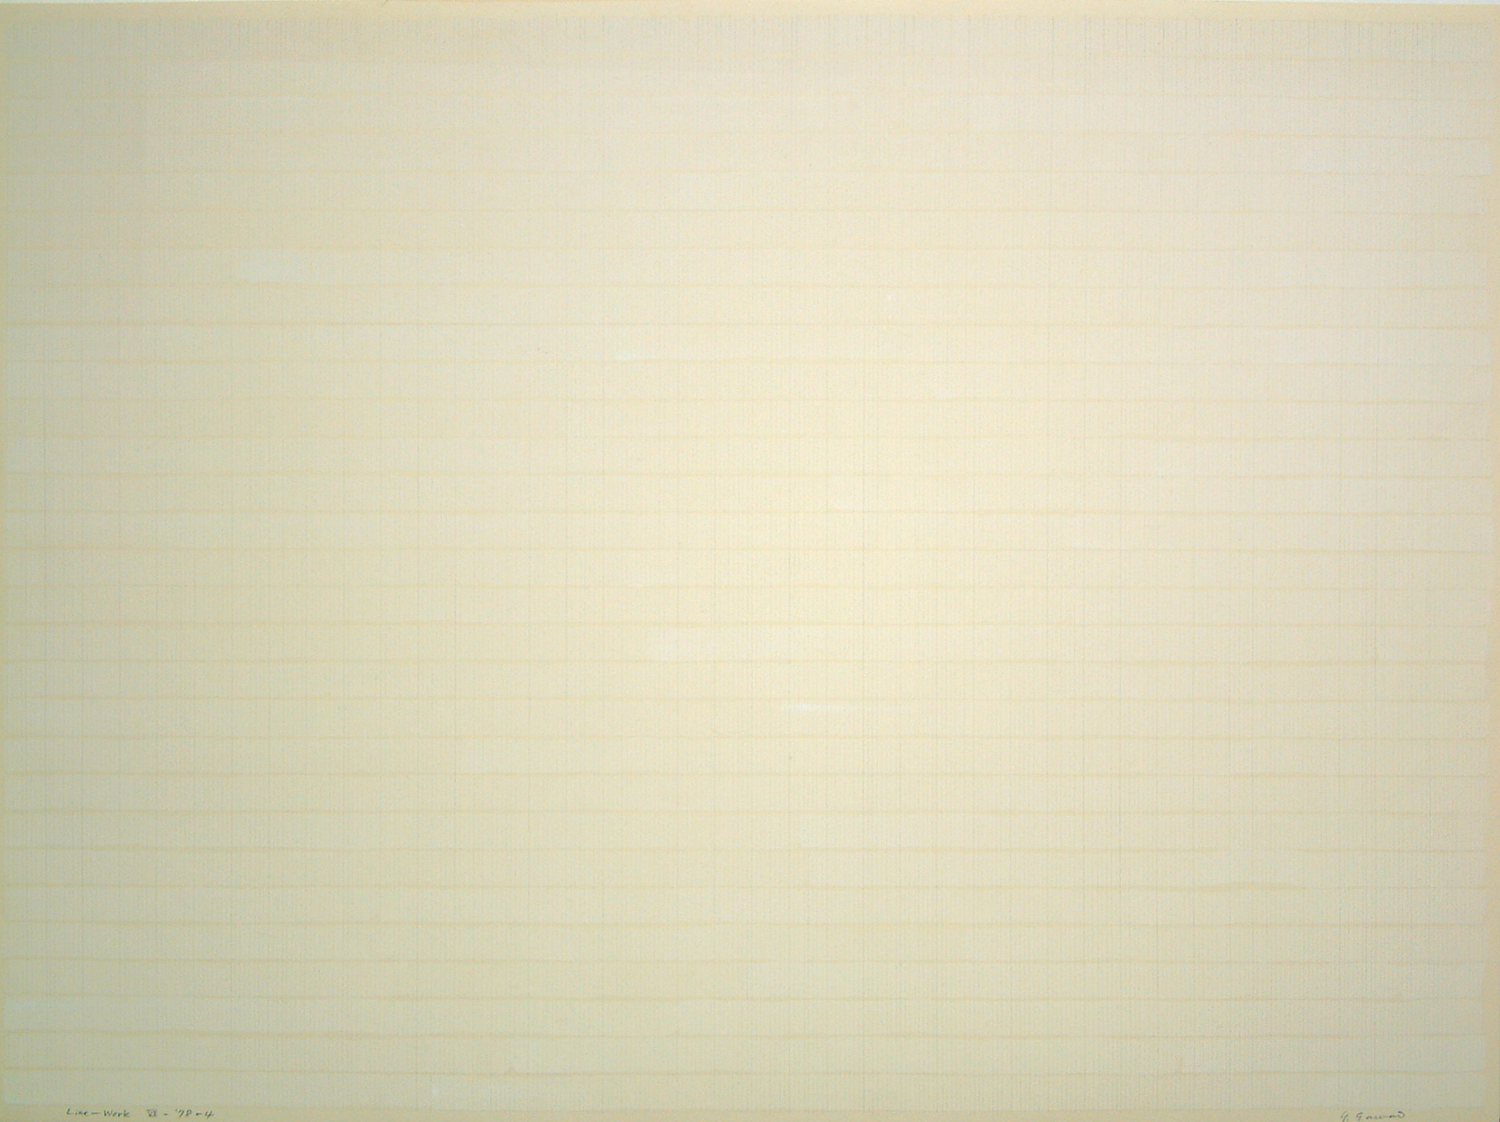 Line-Work VII-78-4|Acrylic, pencil on paper|60 x 81.3 cm|1978